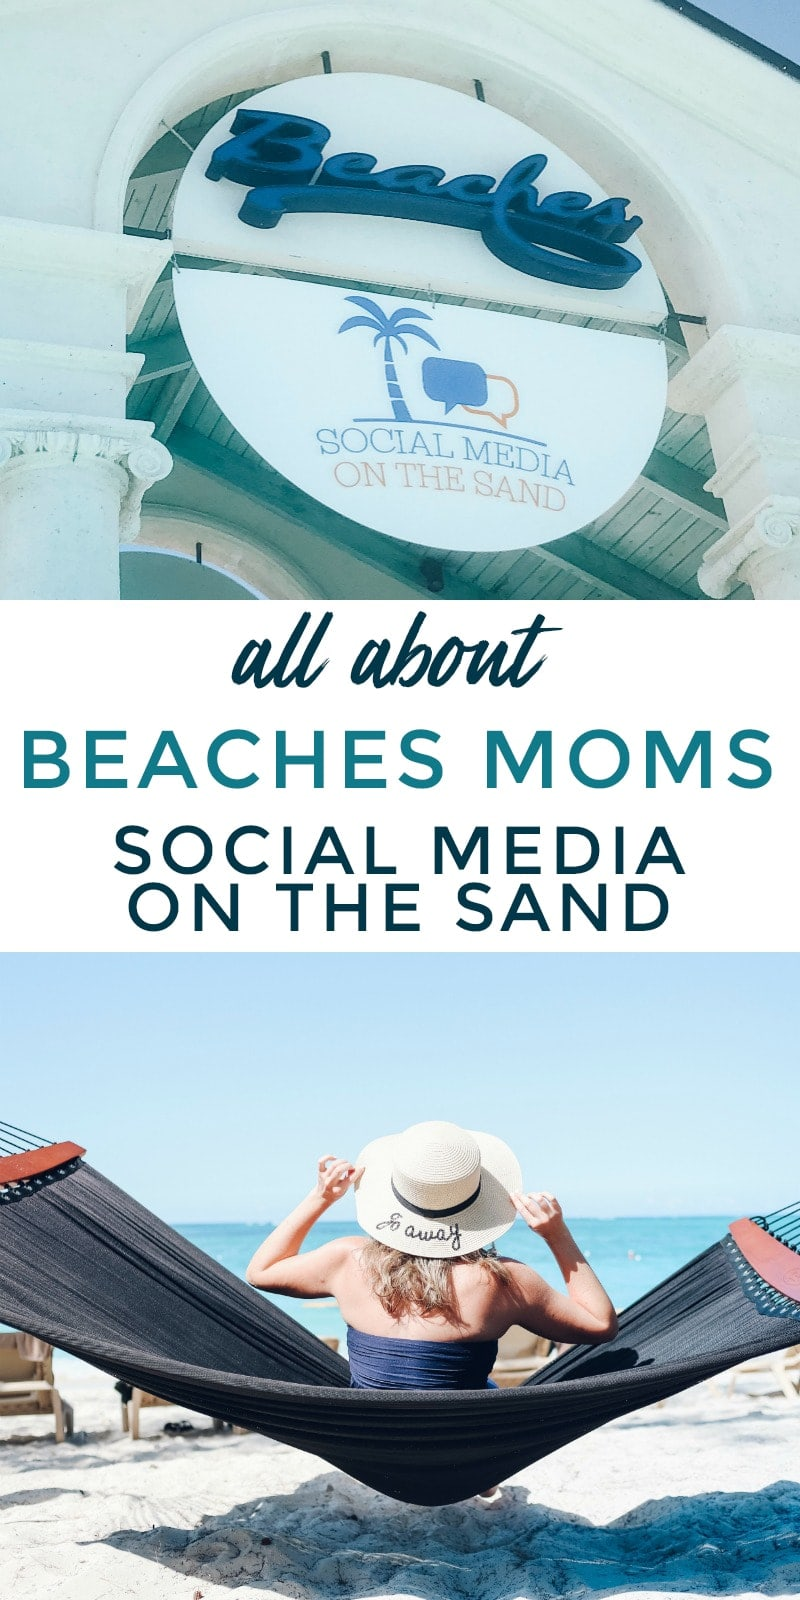 all about Beaches Moms Social Media on the Sand Conference in Turks and Caicos #beachesmoms #socialmediaonthesand